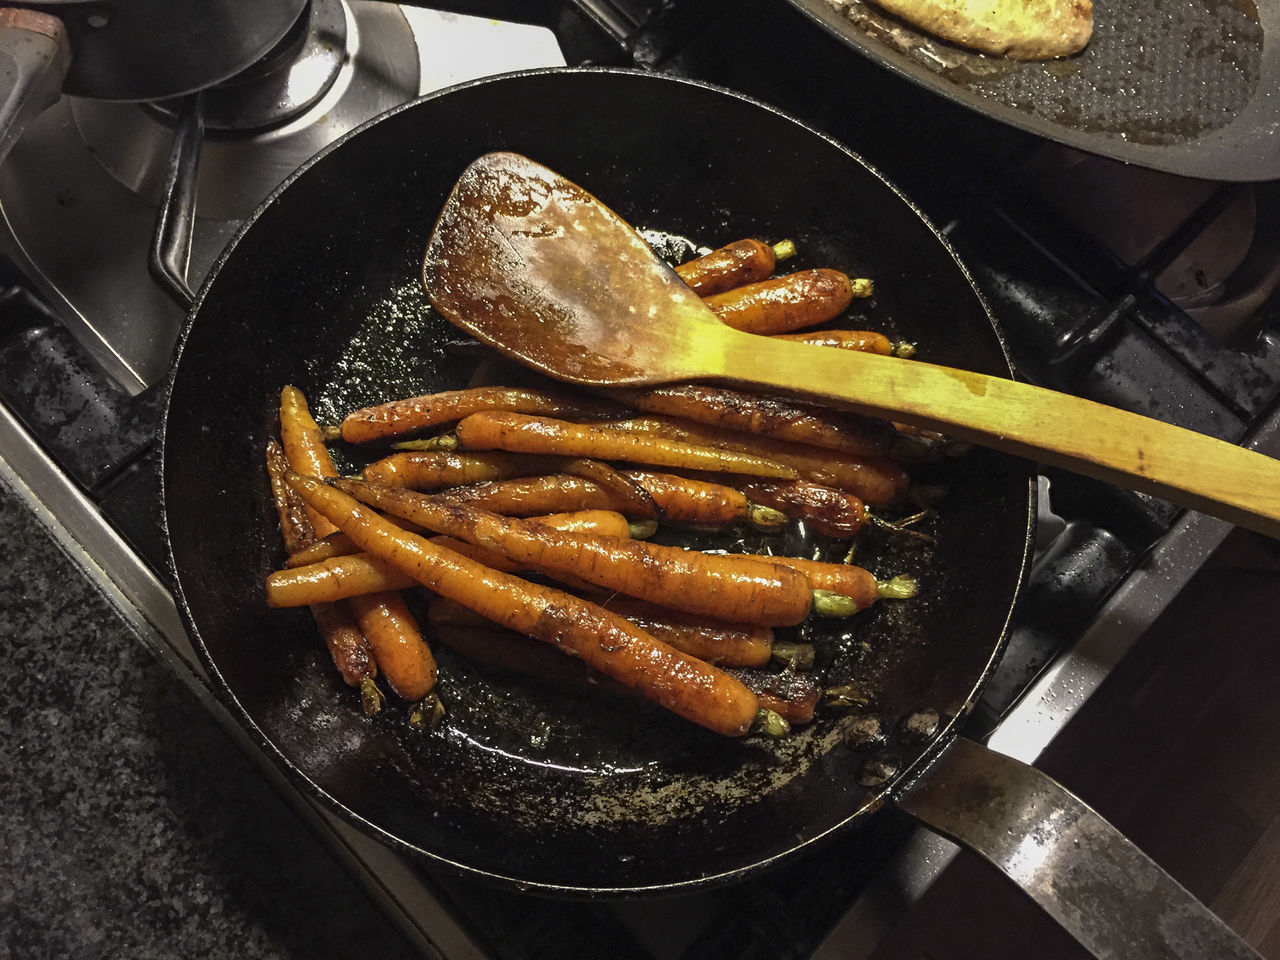 Caramelized carrots in pan Caramalized, Carrots Cooking Food, Healthy Julia's Kitchen, Pacific Grove, Bread, Appetizer Kitchen Ladle Pan, Skillet, Stove Vegetables